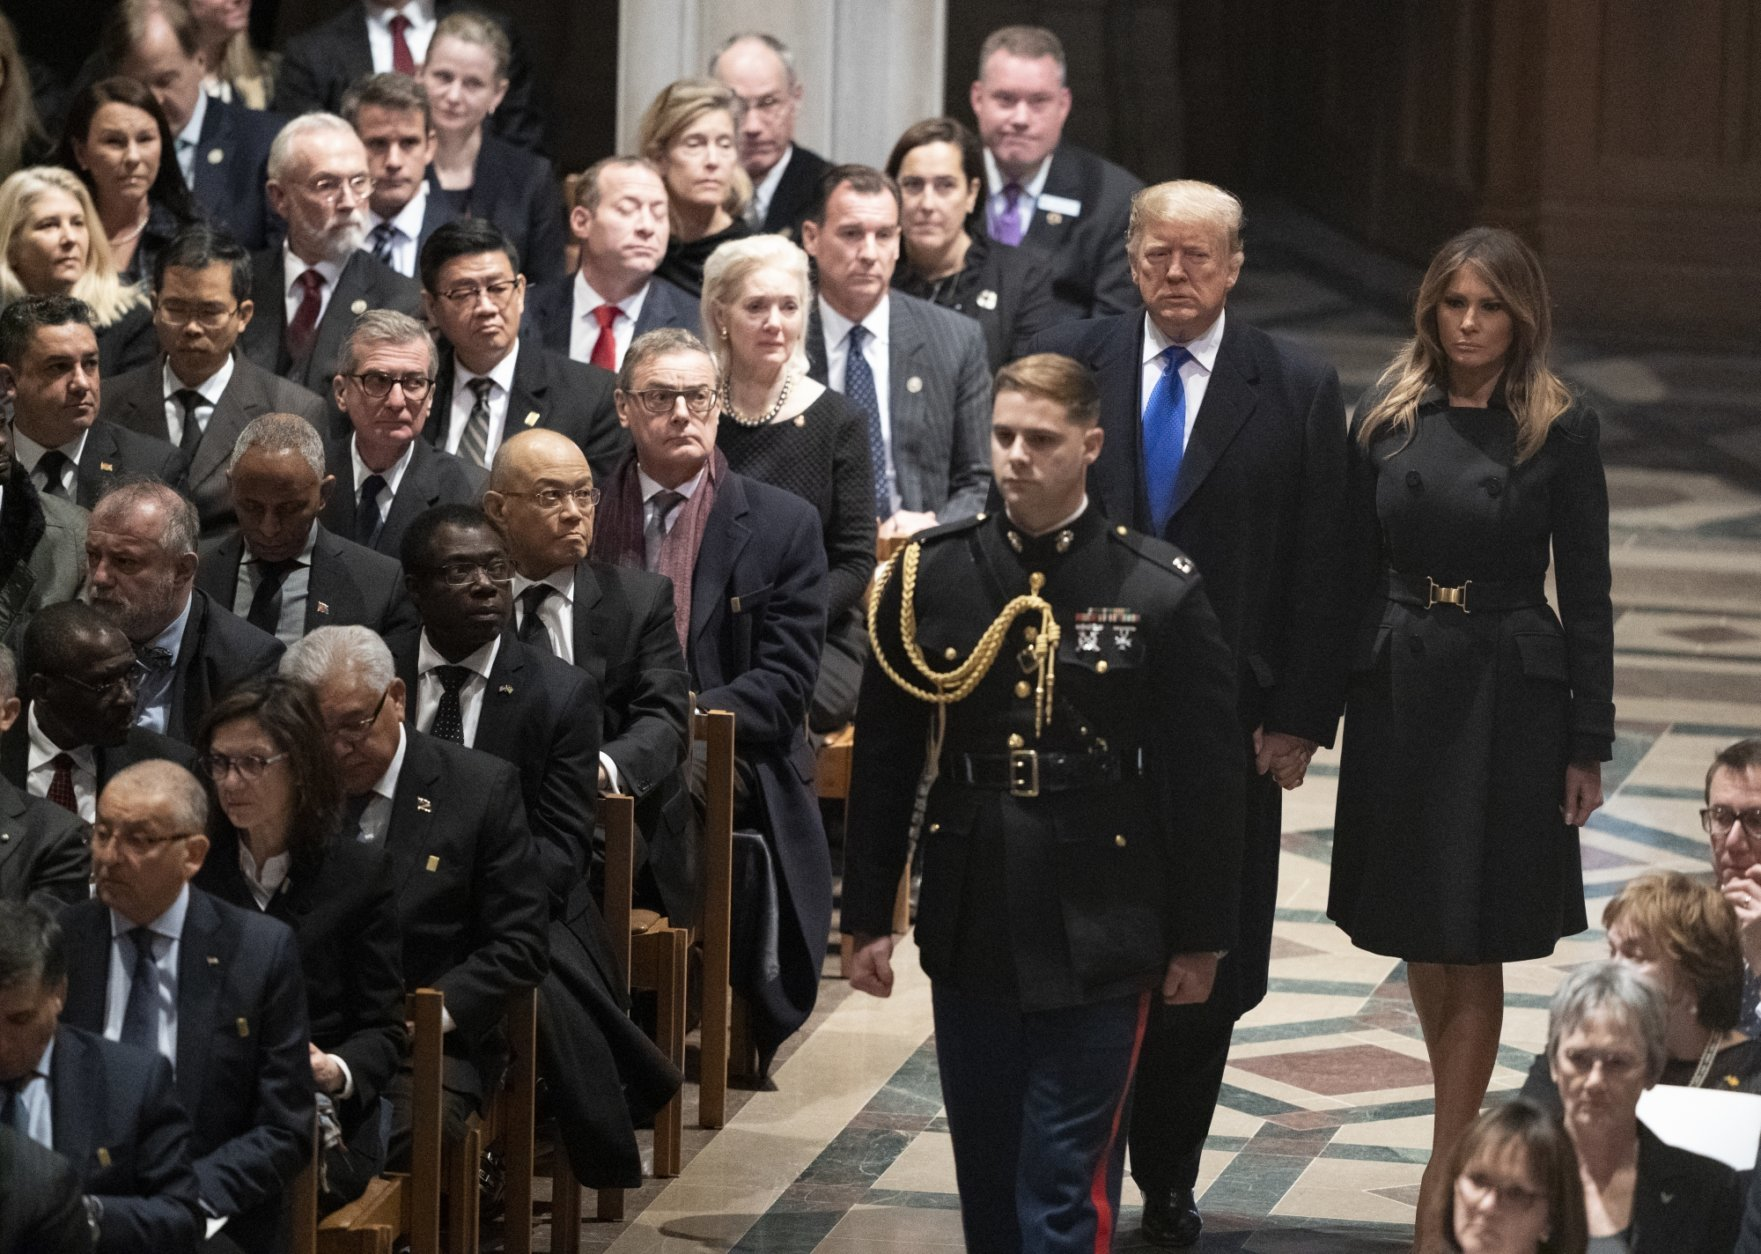 President Donald Trump and first lady Melania Trump arrive for the State Funeral for former President George H.W. Bush at the Washington National Cathedral in Washington, Wednesday, Dec. 5, 2018. (AP Photo/Carolyn Kaster)